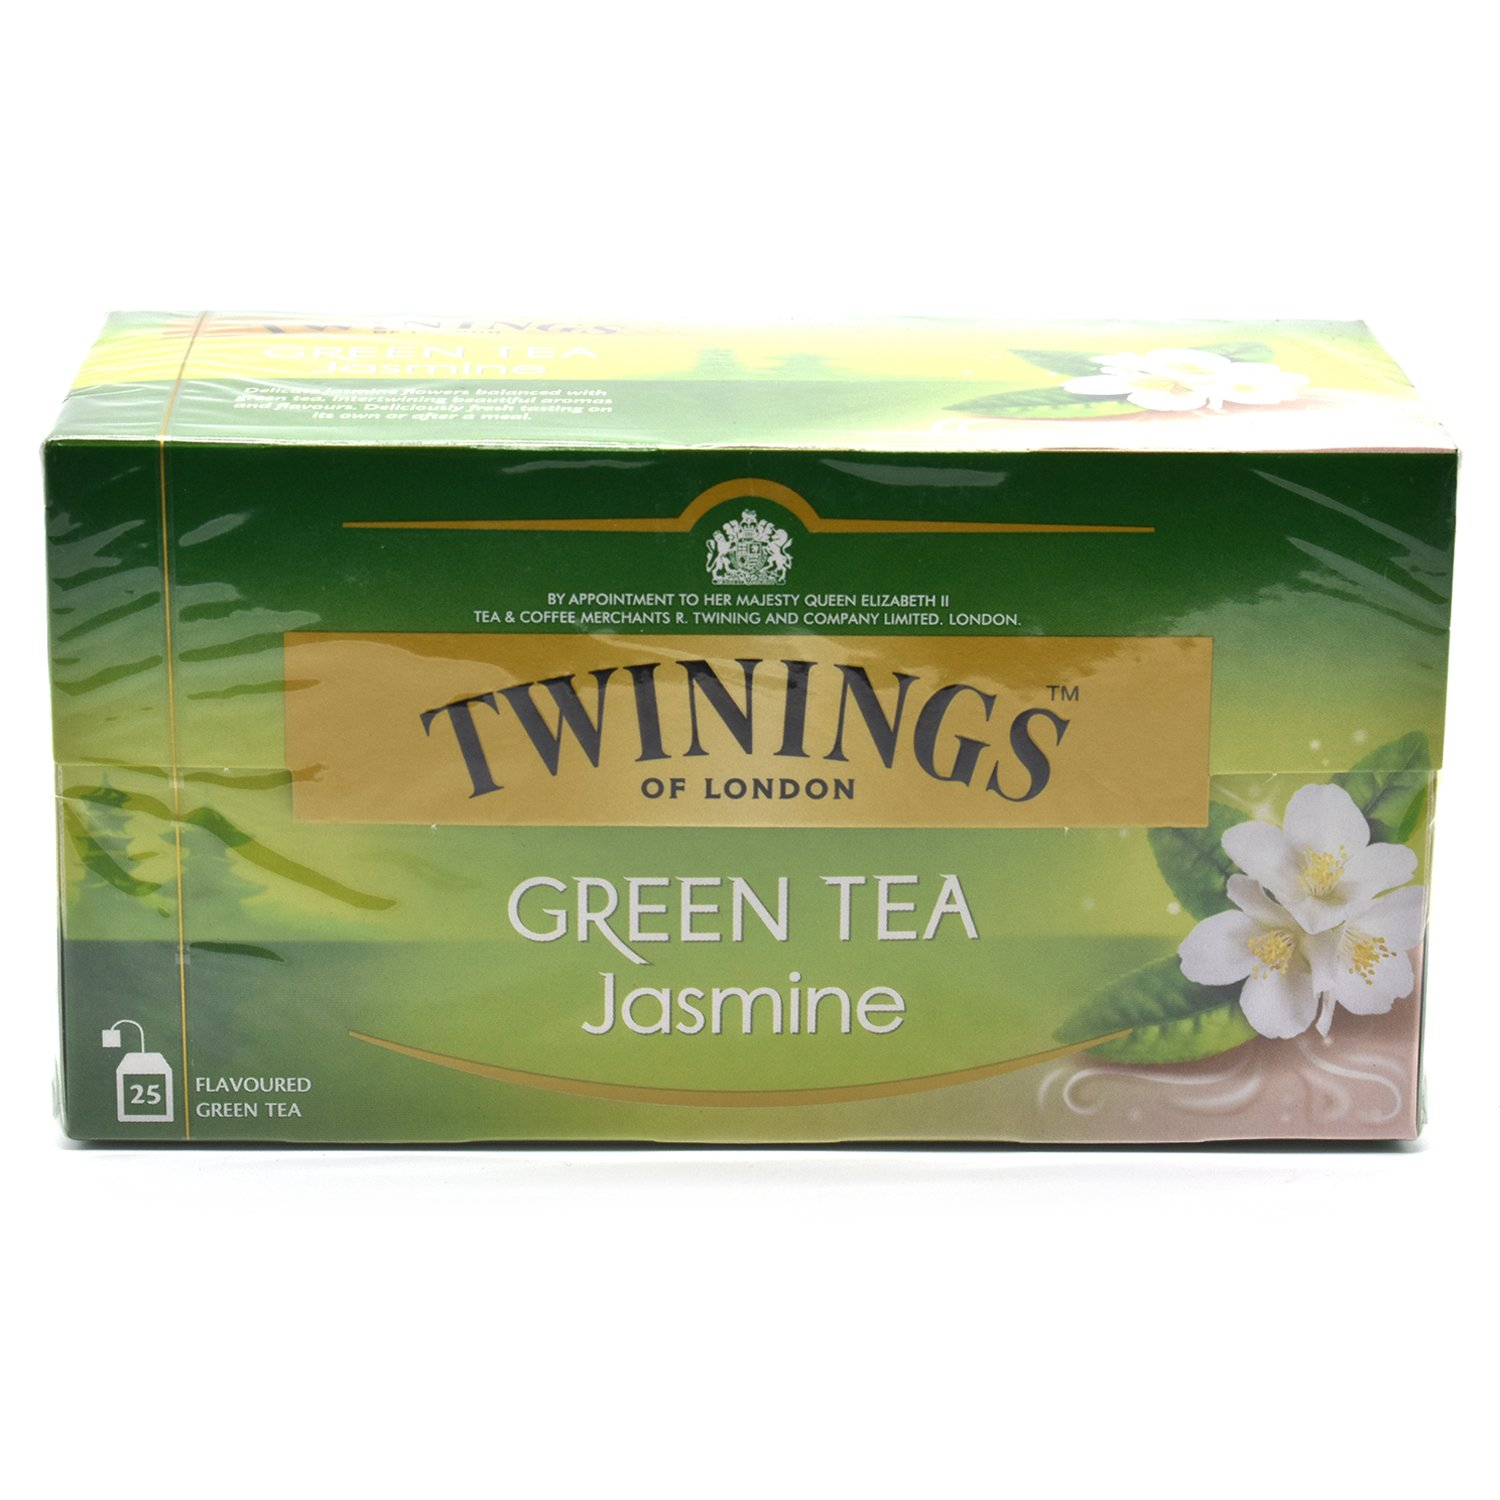 Twinings of London Jazmín Té Verde 25 bolsas de té: Amazon.es: Alimentación y bebidas